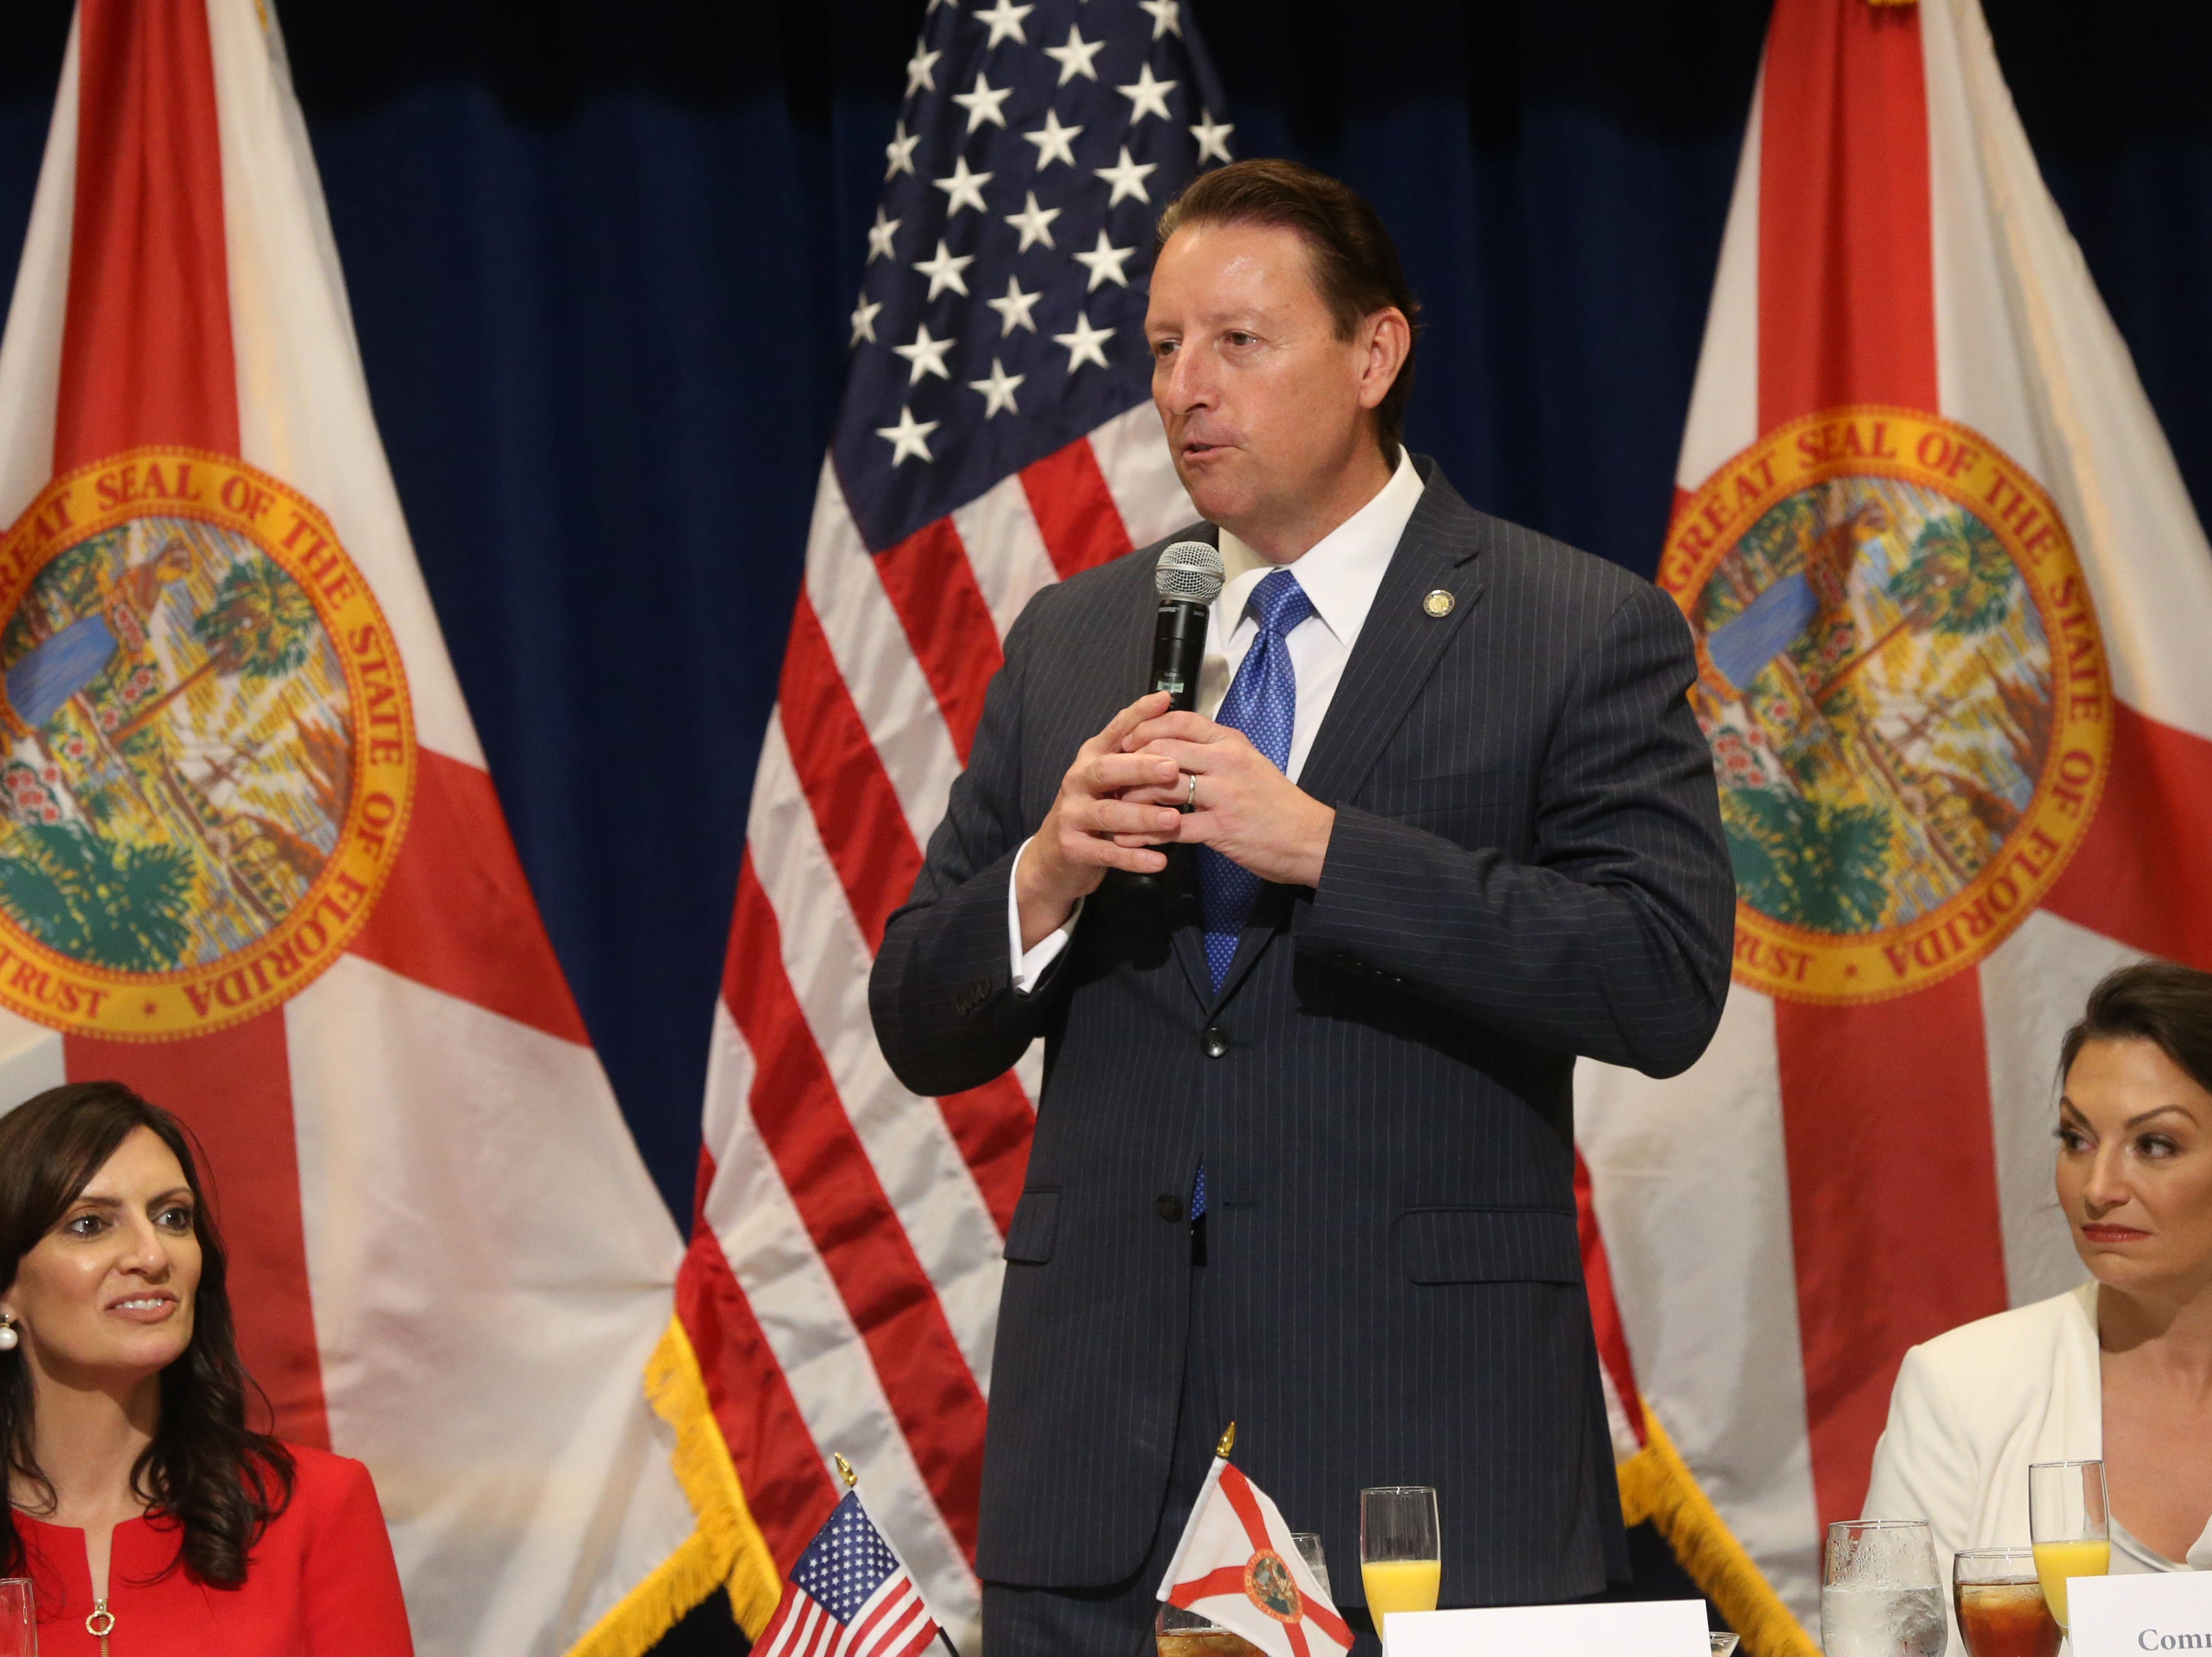 For the first time in Inaugural history, Gov. Ron DeSantis addresses FloridaÕs Legislative leaders and Cabinet officials. DeSantis discusses his plans to work with our stateÕs elected leaders to achieve a Bold Vision for a Brighter Future, Tuesday, Jan. 8, 2019. Senate President Bill Galvano gives a toast to Gov. Ron DeSantis.